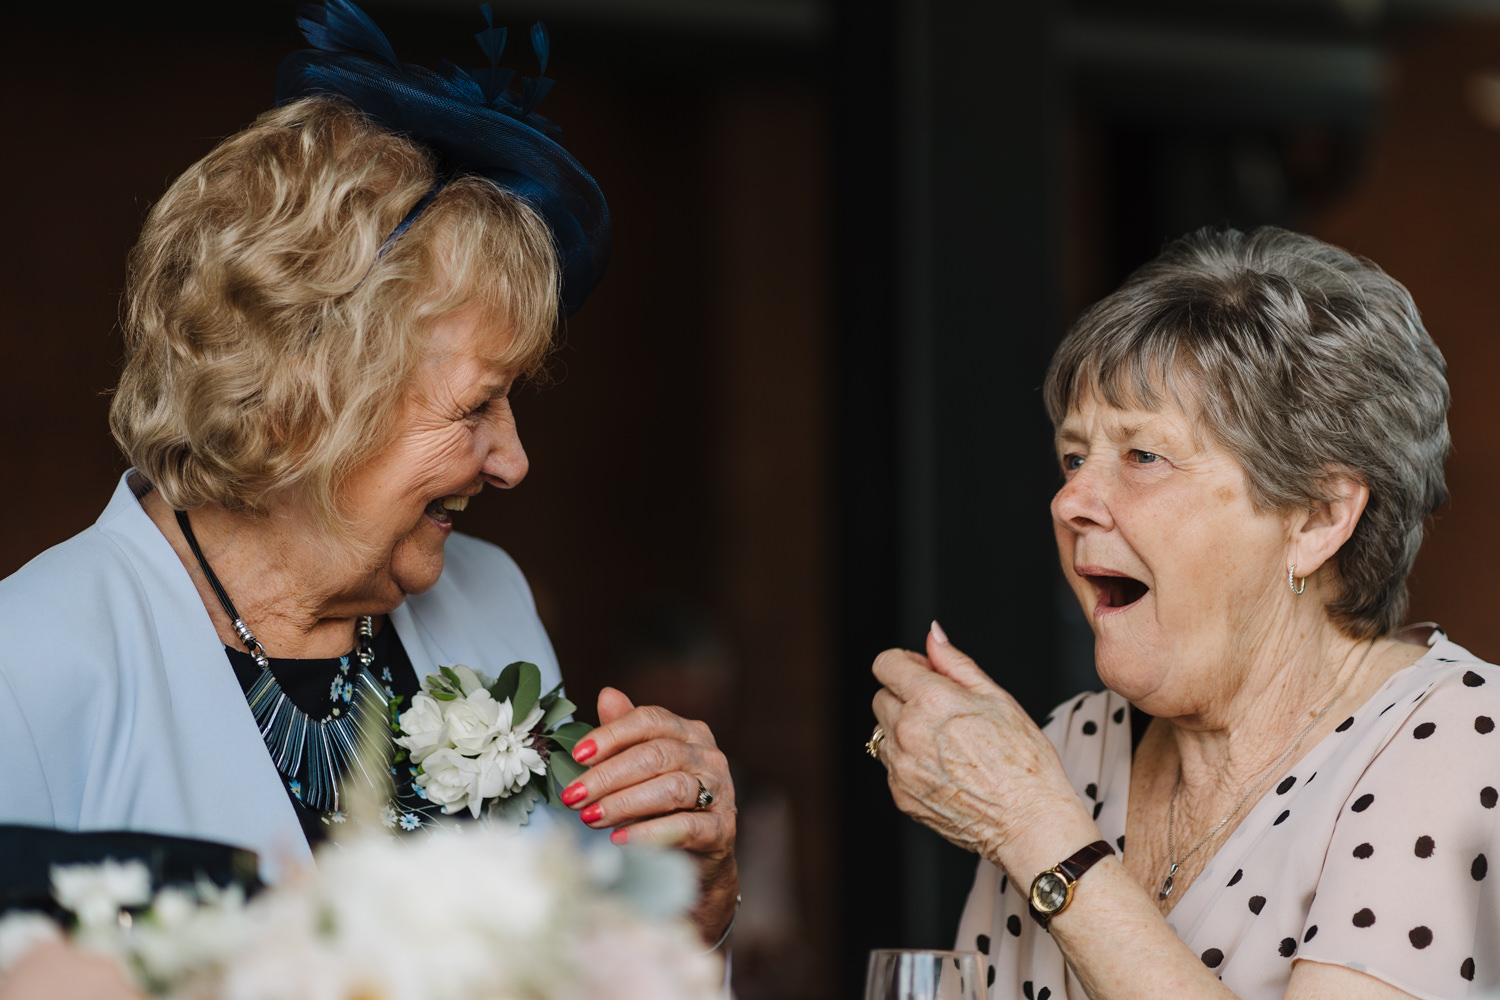 Brides gran laughing